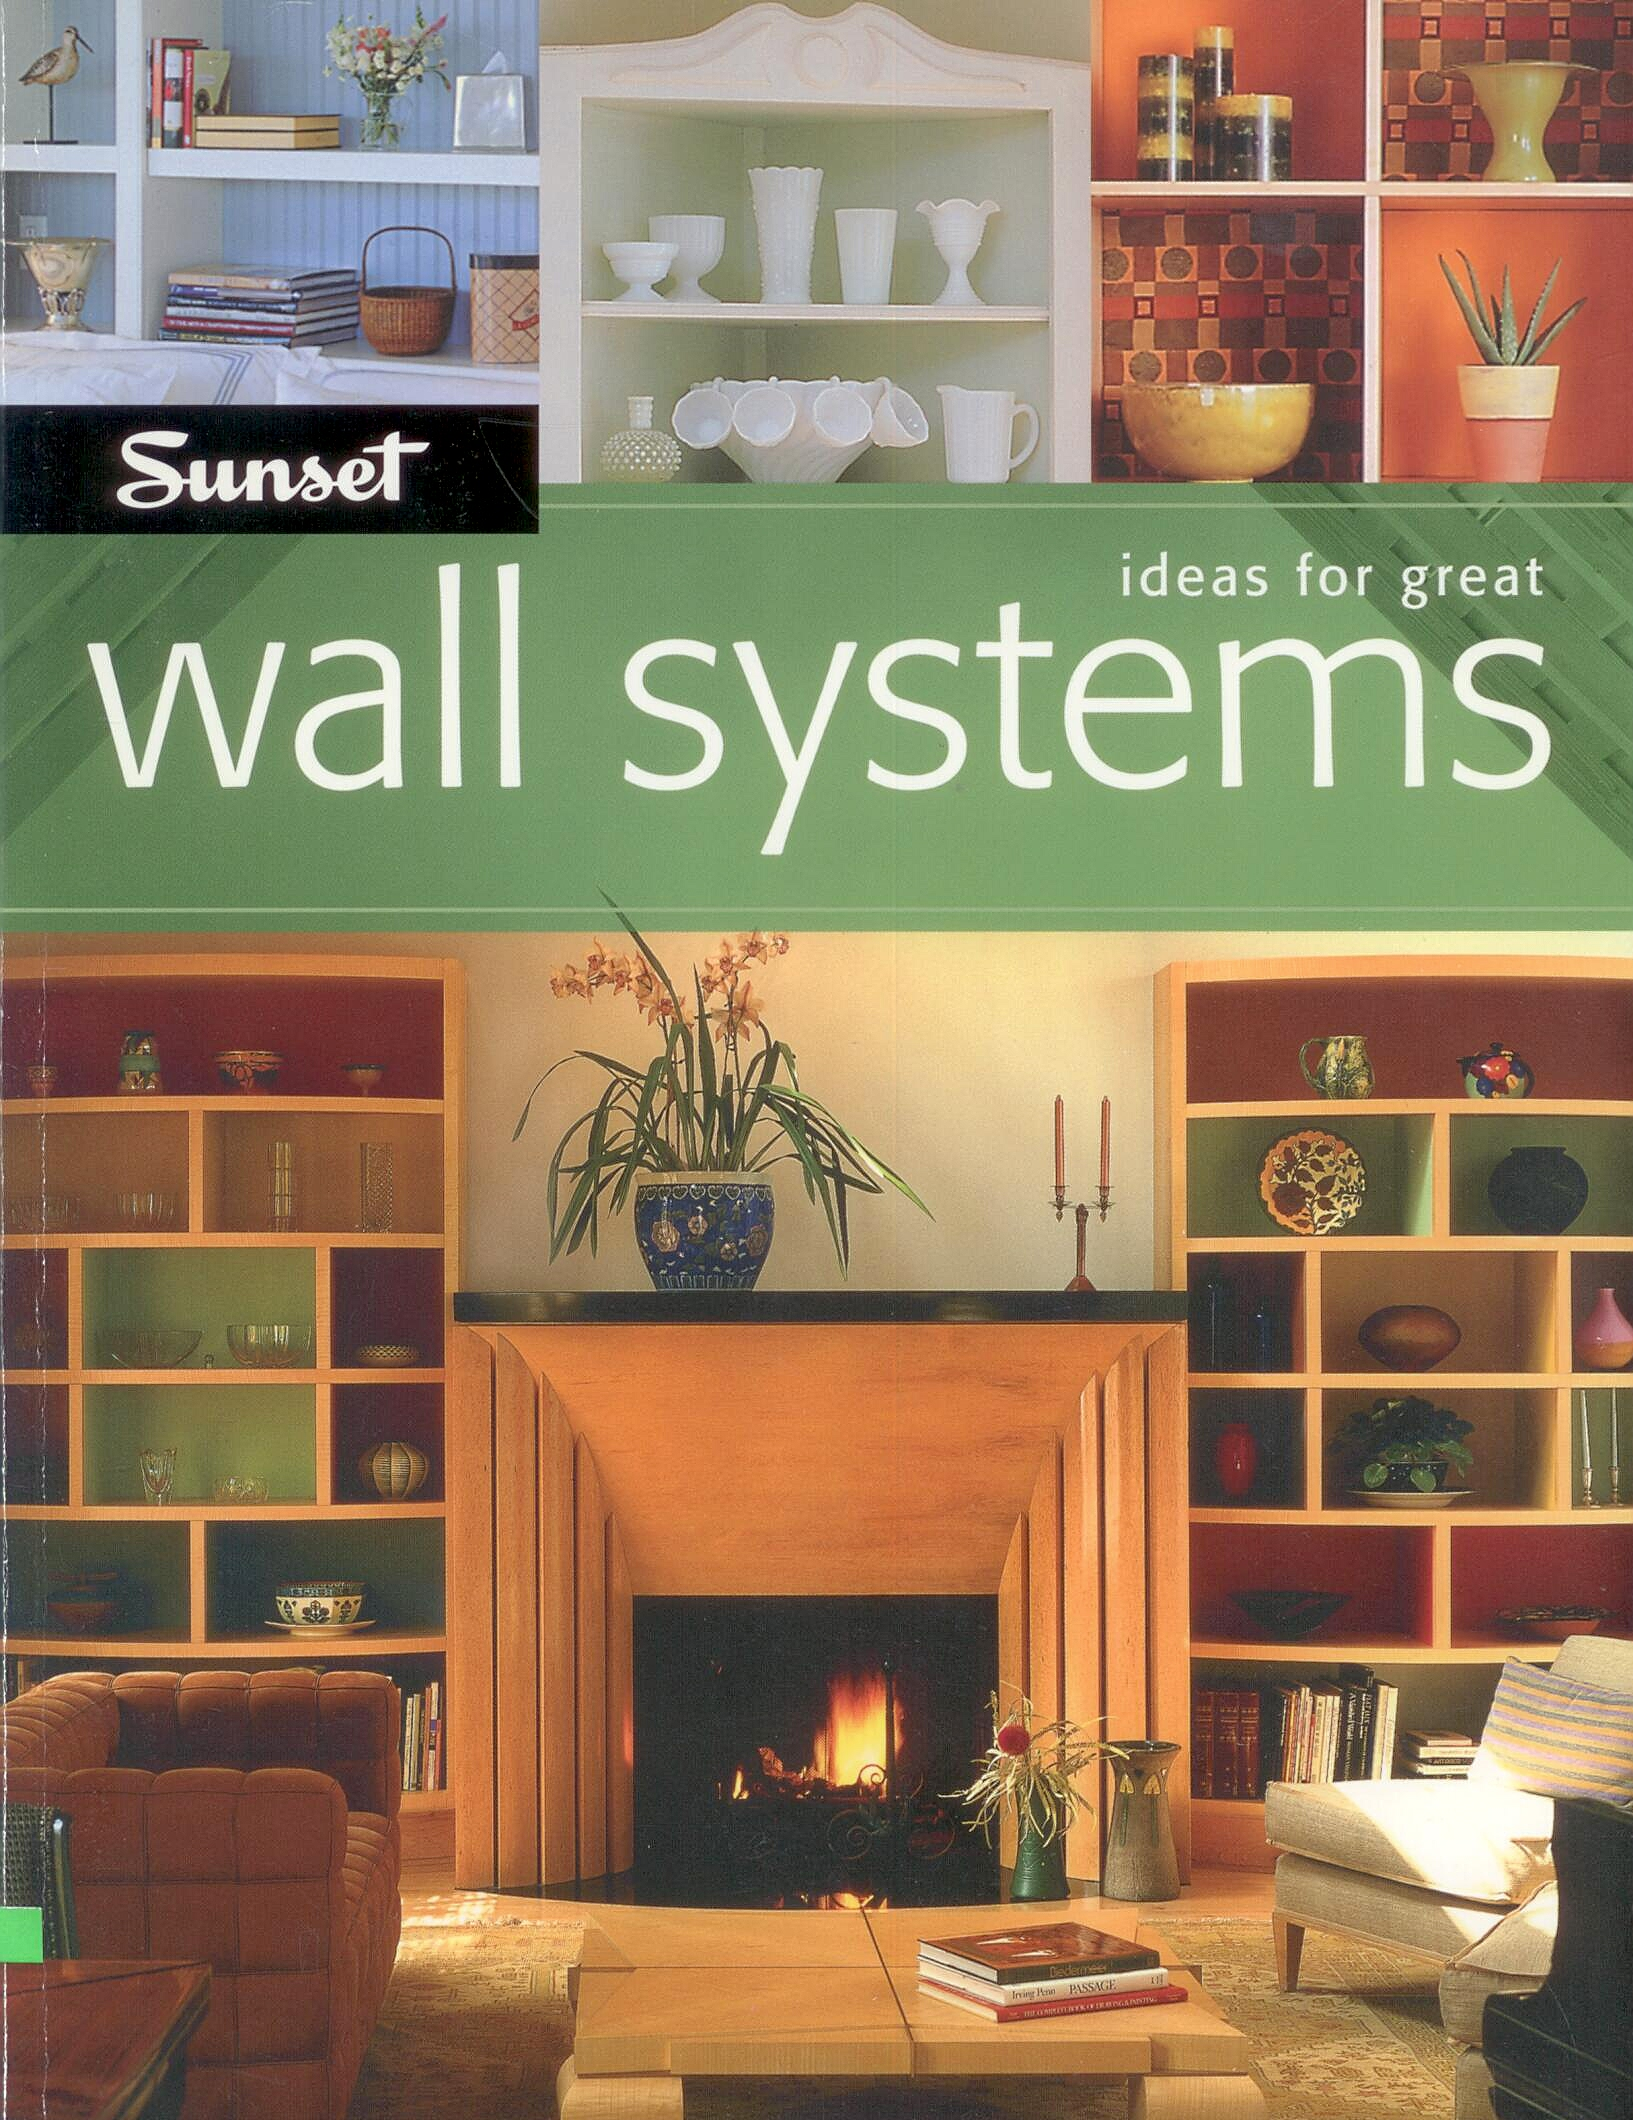 Sunset - Ideas for Great Wall Systems - cover.jpg